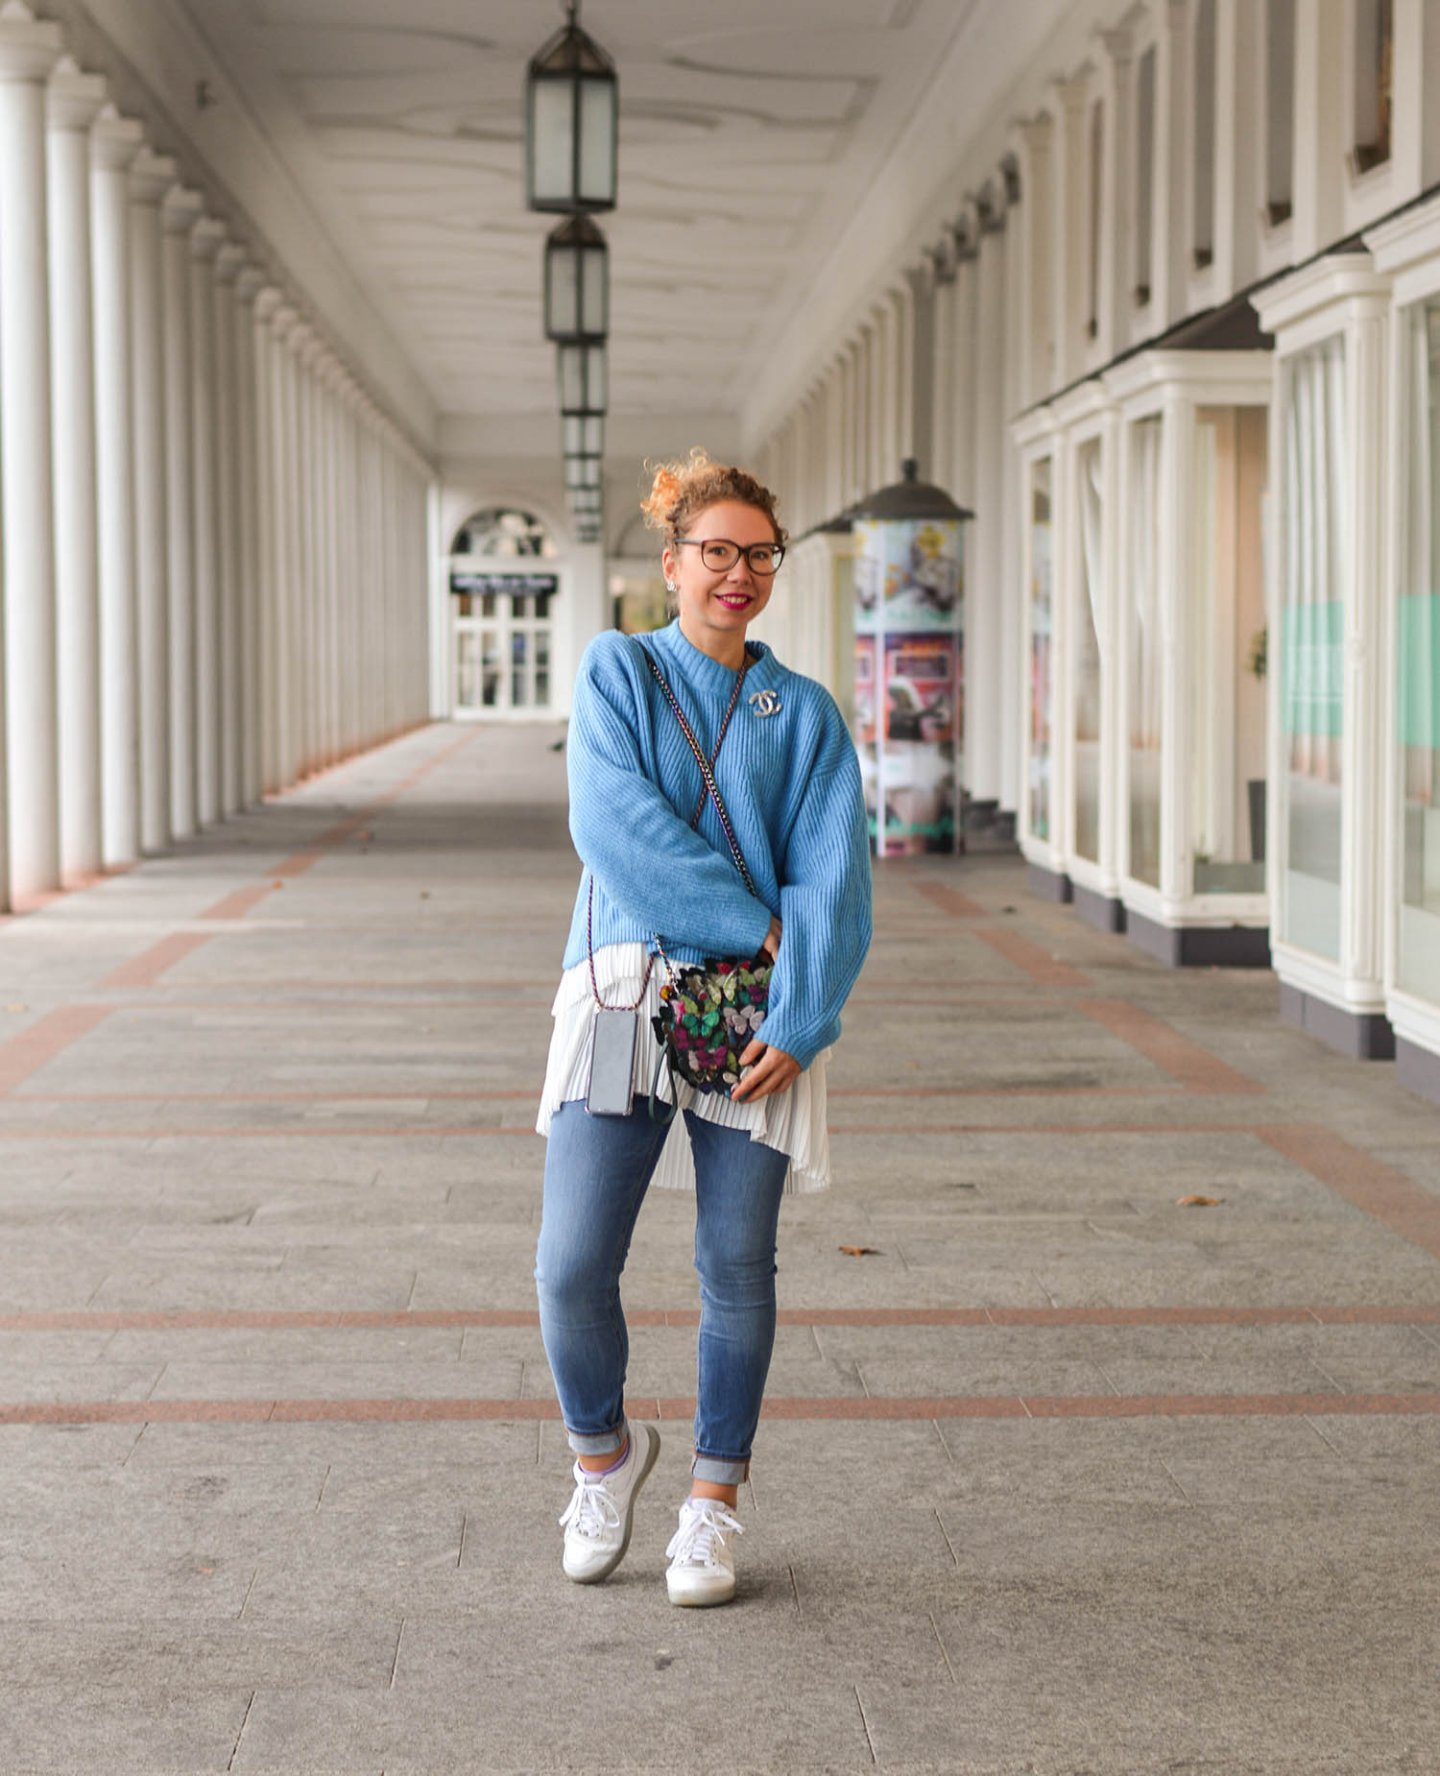 Baby-Blue-Sweater-Longbluse-Nike-Sneakers-Casual-Winter-Outfit-Kationette-Fashionblogger-Germany